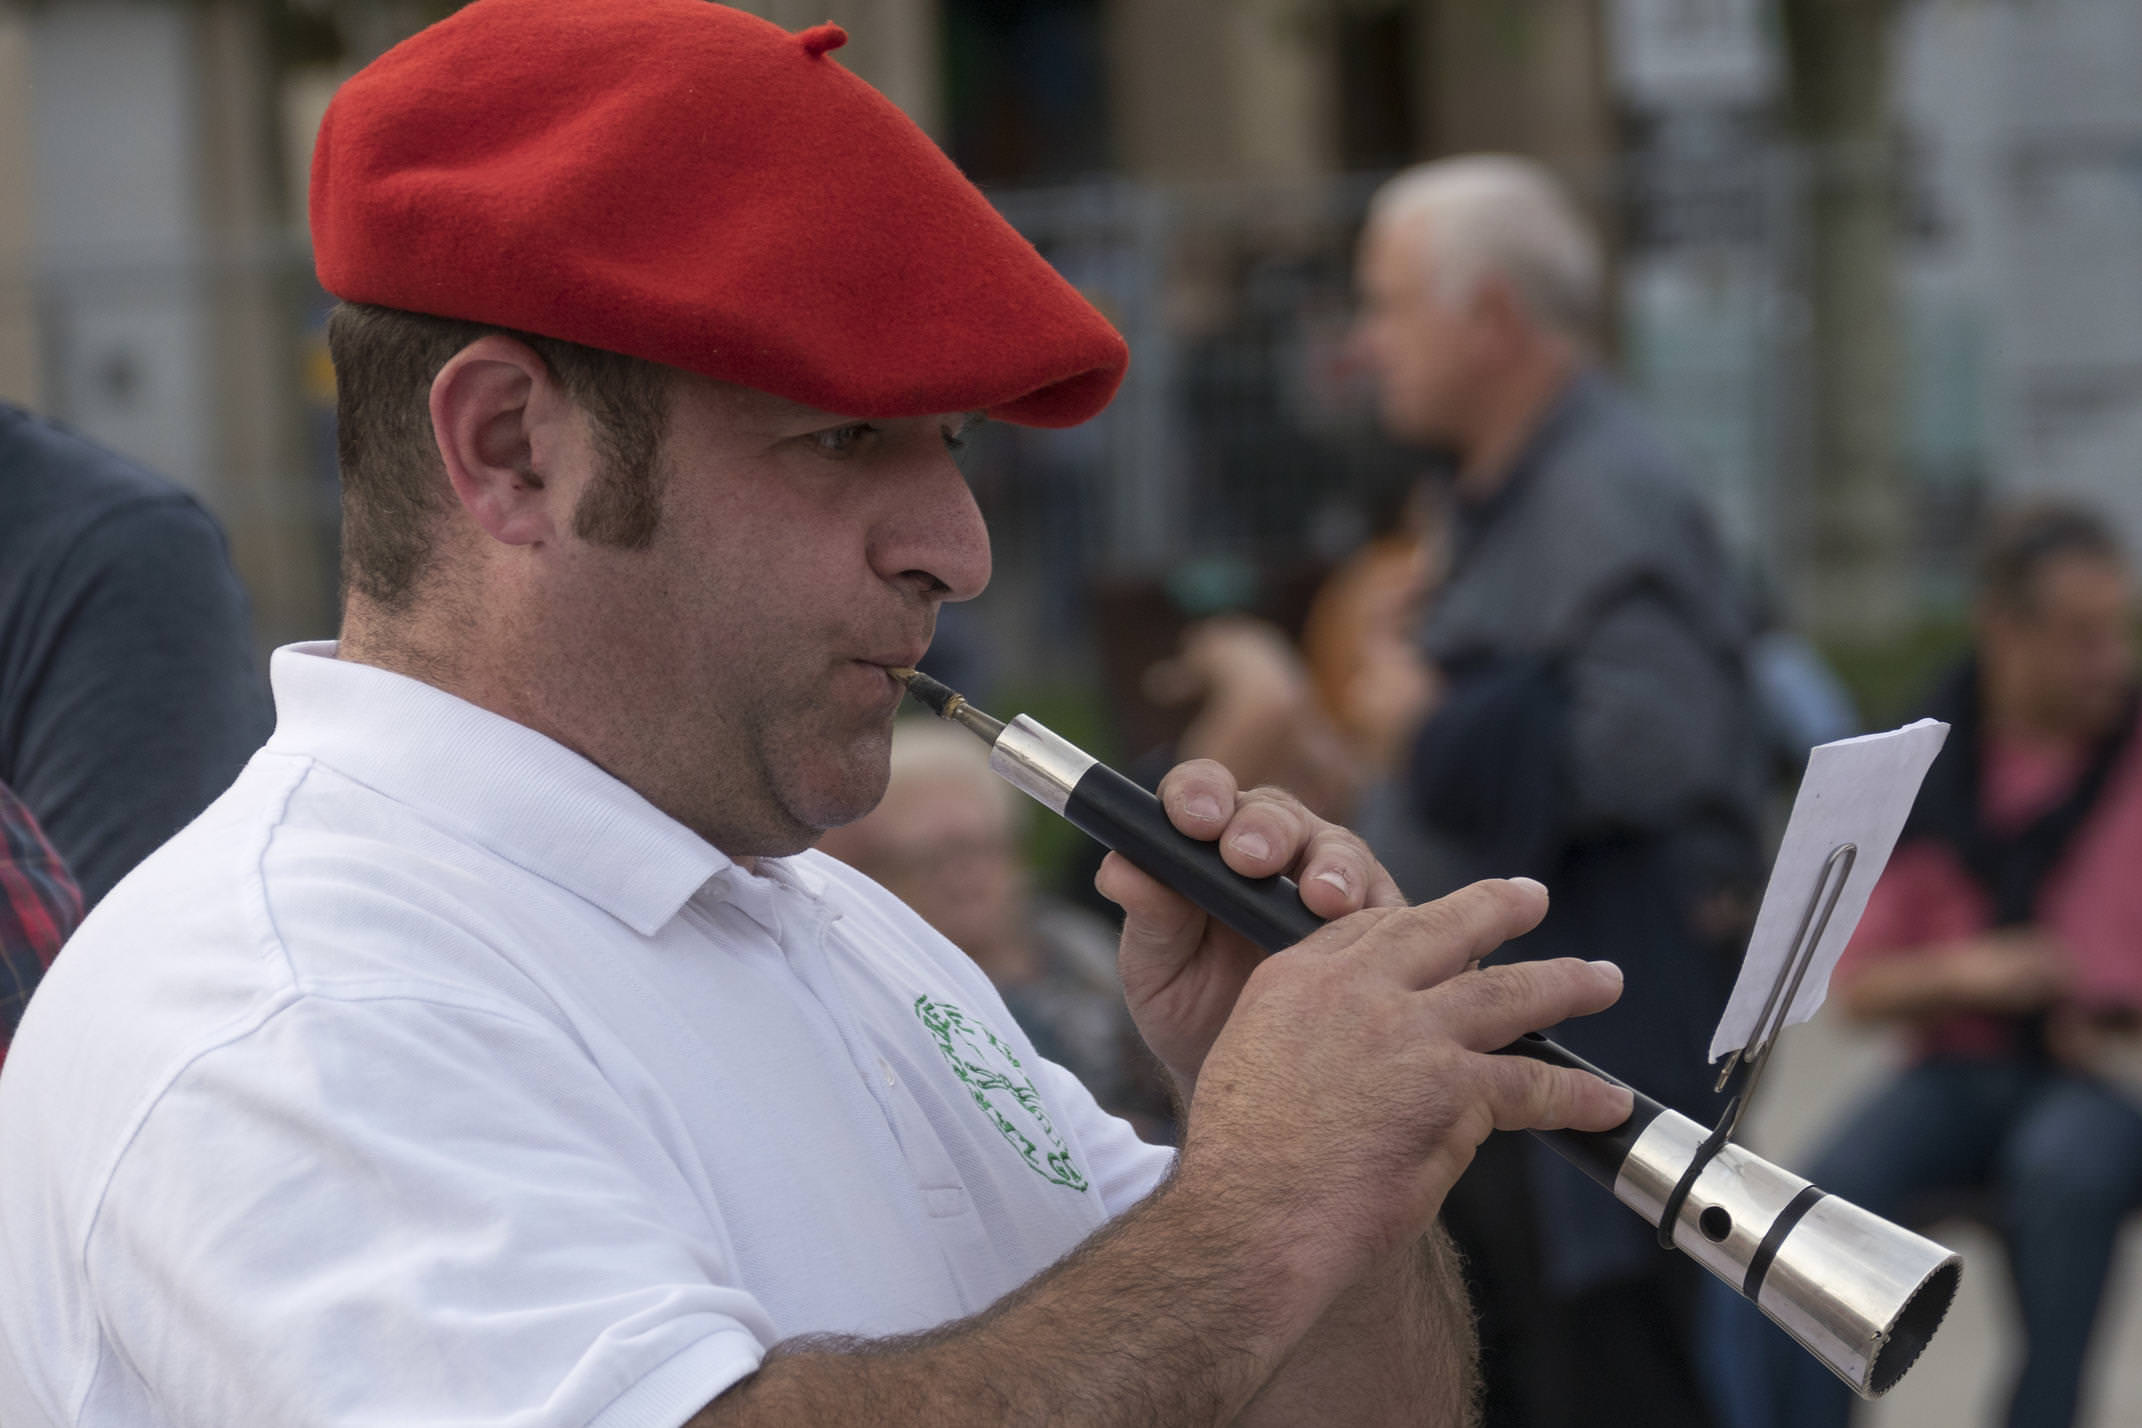 Spain navarre basque pamplona musician traditional c diego